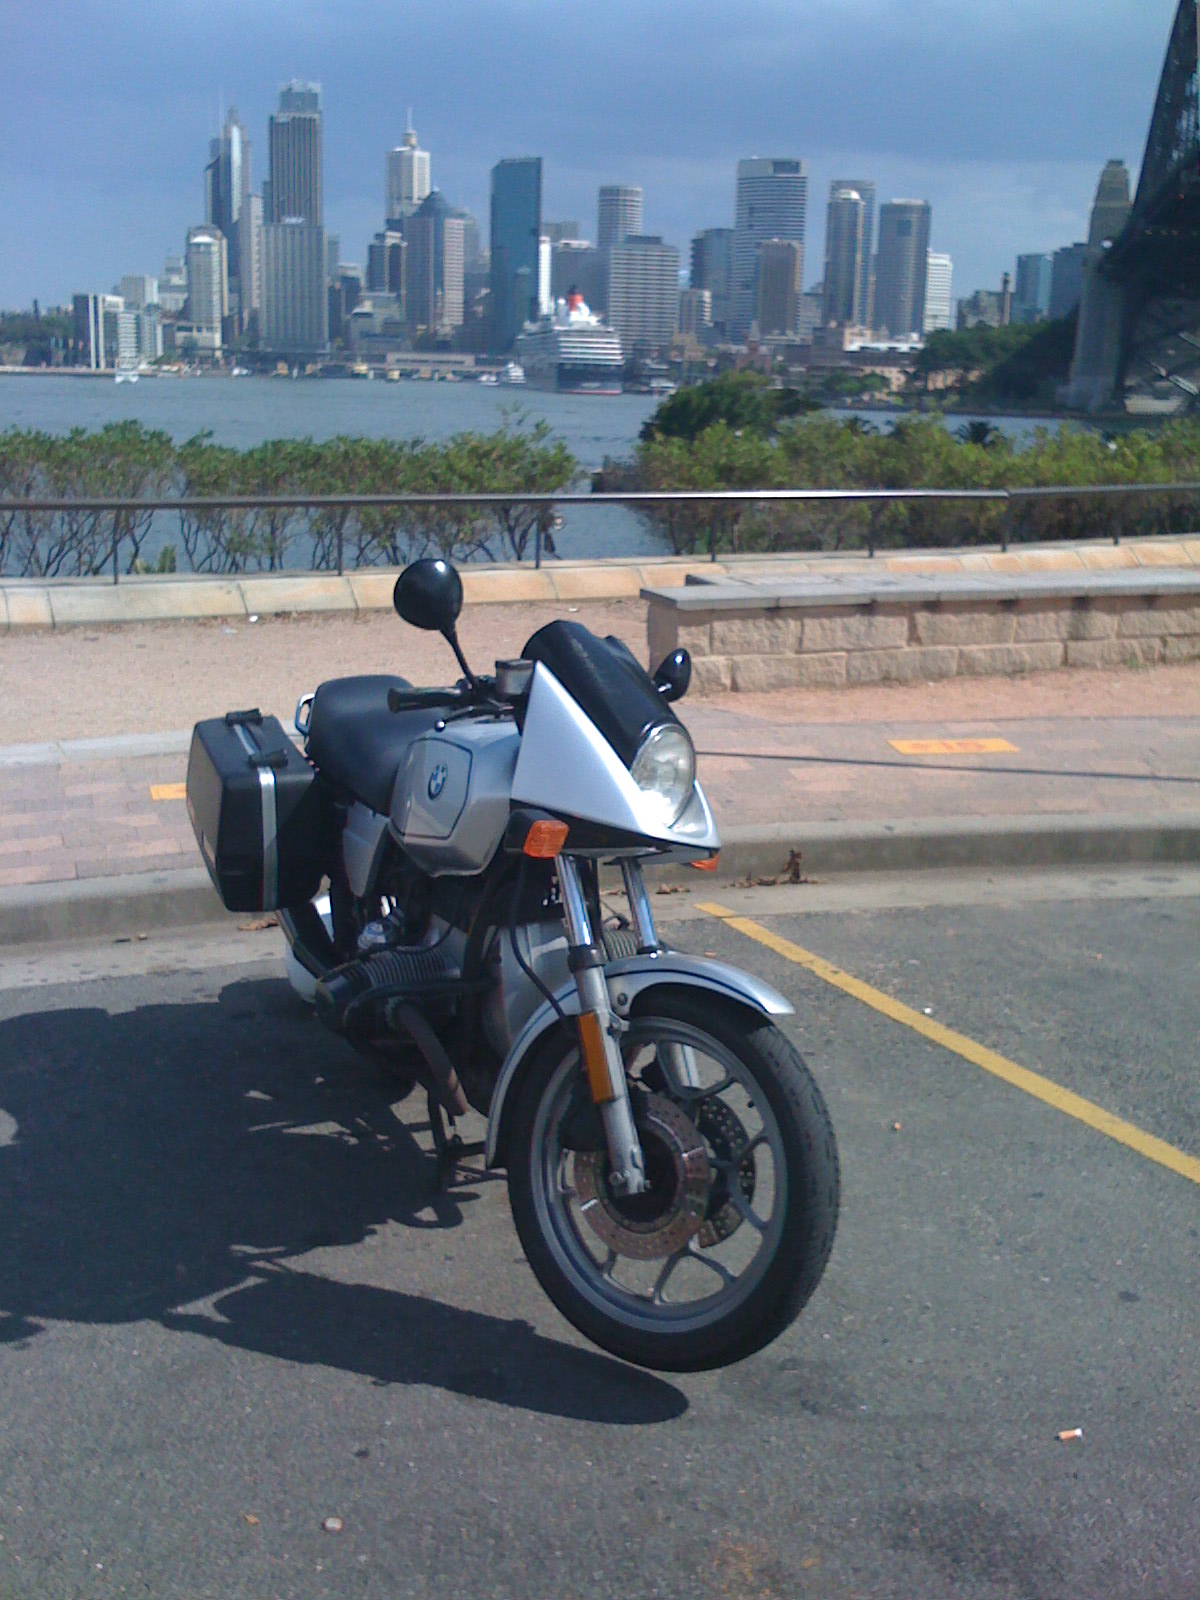 Here the BMW R65LS dwarfs the ocean liner <i>Queen Victoria</i>.